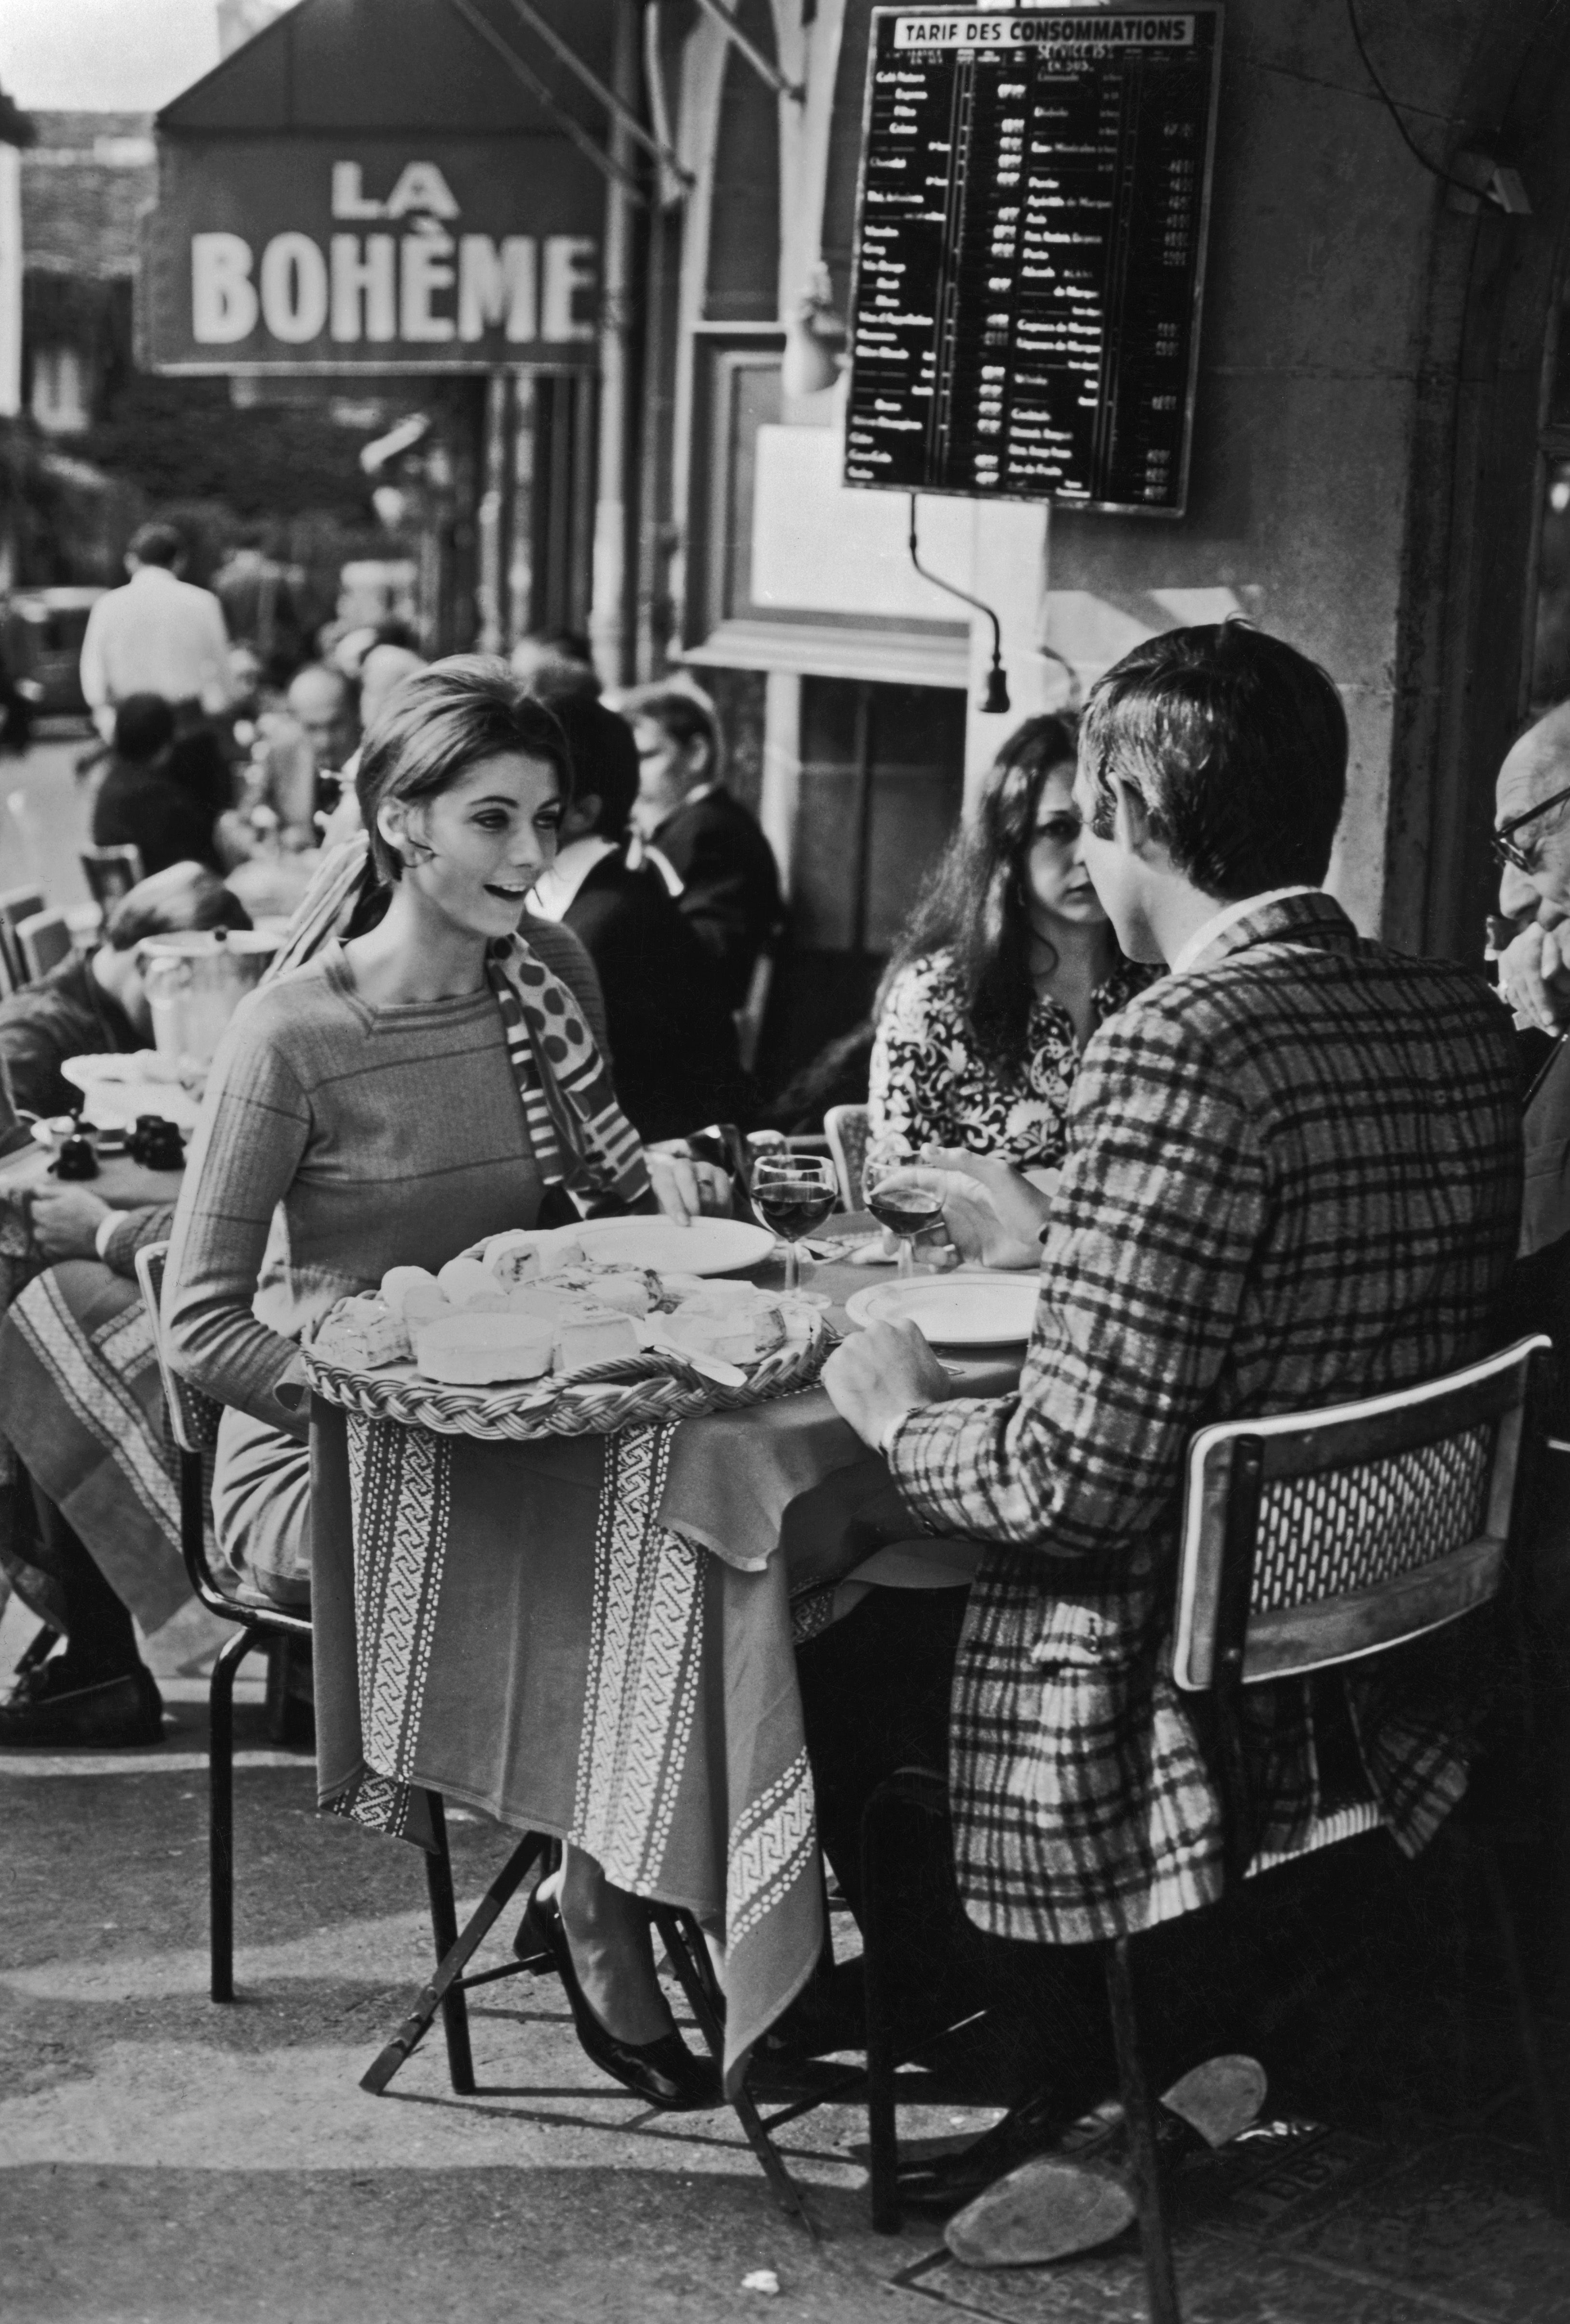 13 Vintage Photos Of Paris That Will Make You Wish For A ...